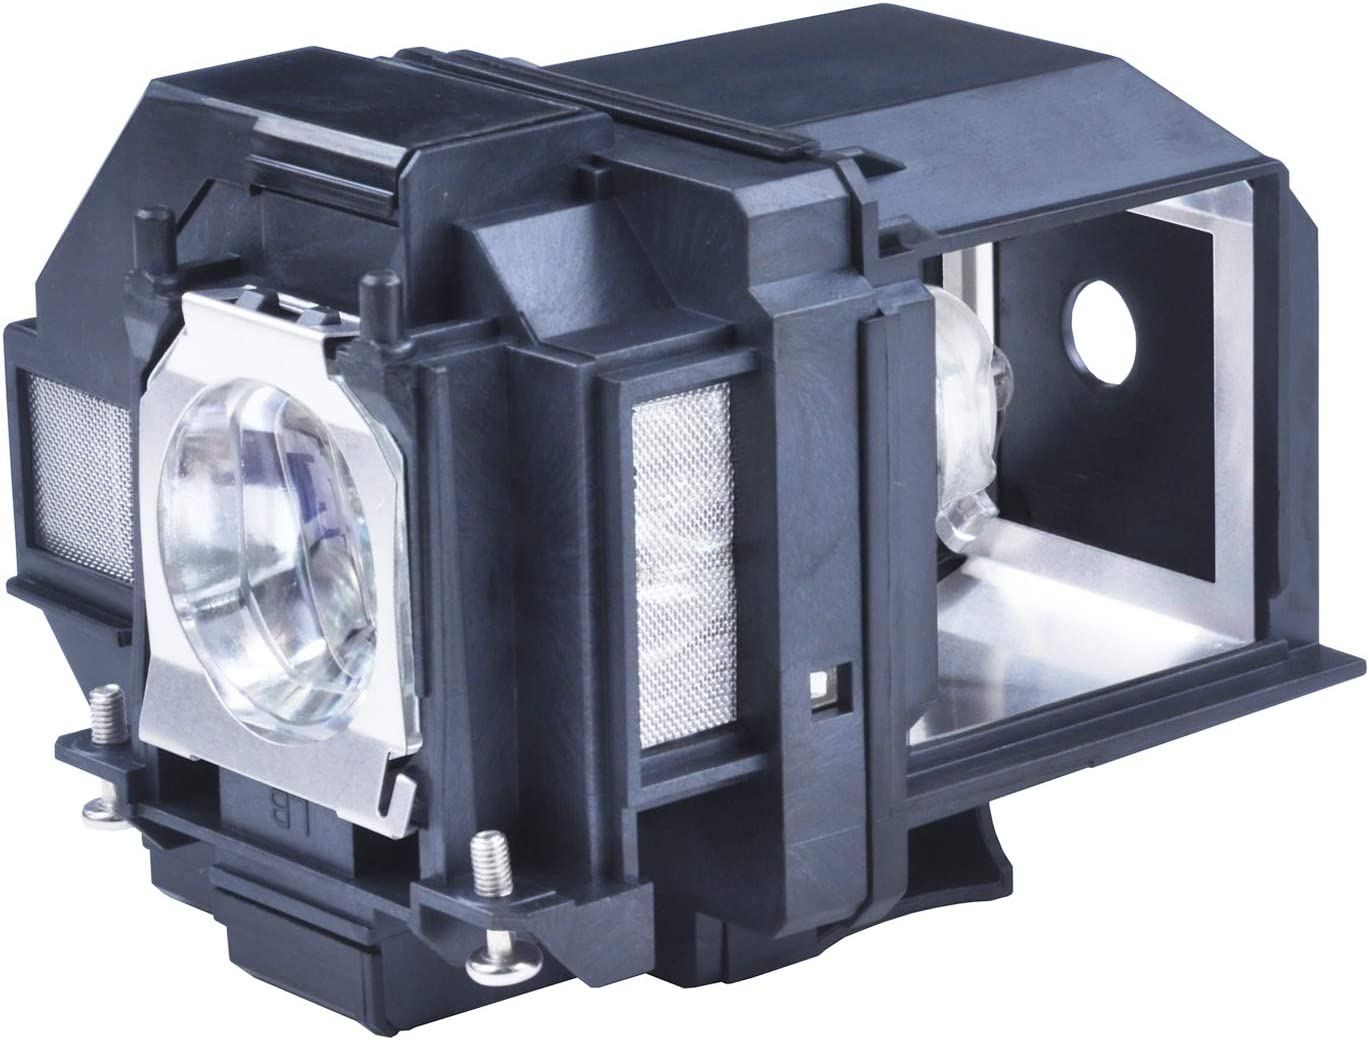 for ELPLP96 V13H010L96 EPSON Vs350 Vs355 Home Cinema 2100 Home Cinema 2150 1060 660 760hd VS250 VS350 VS355 EX9210 Projector lamp with Housing by SW-LAMP